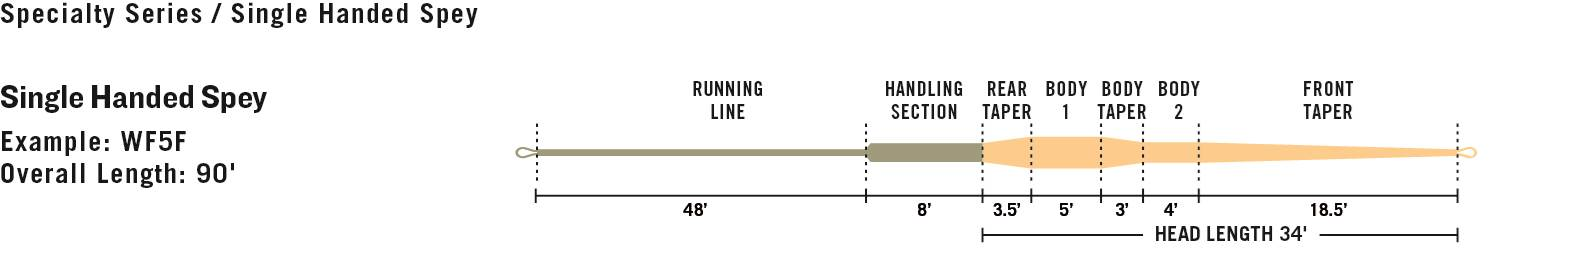 line-profile-intouch-single-hand-spey.jpg